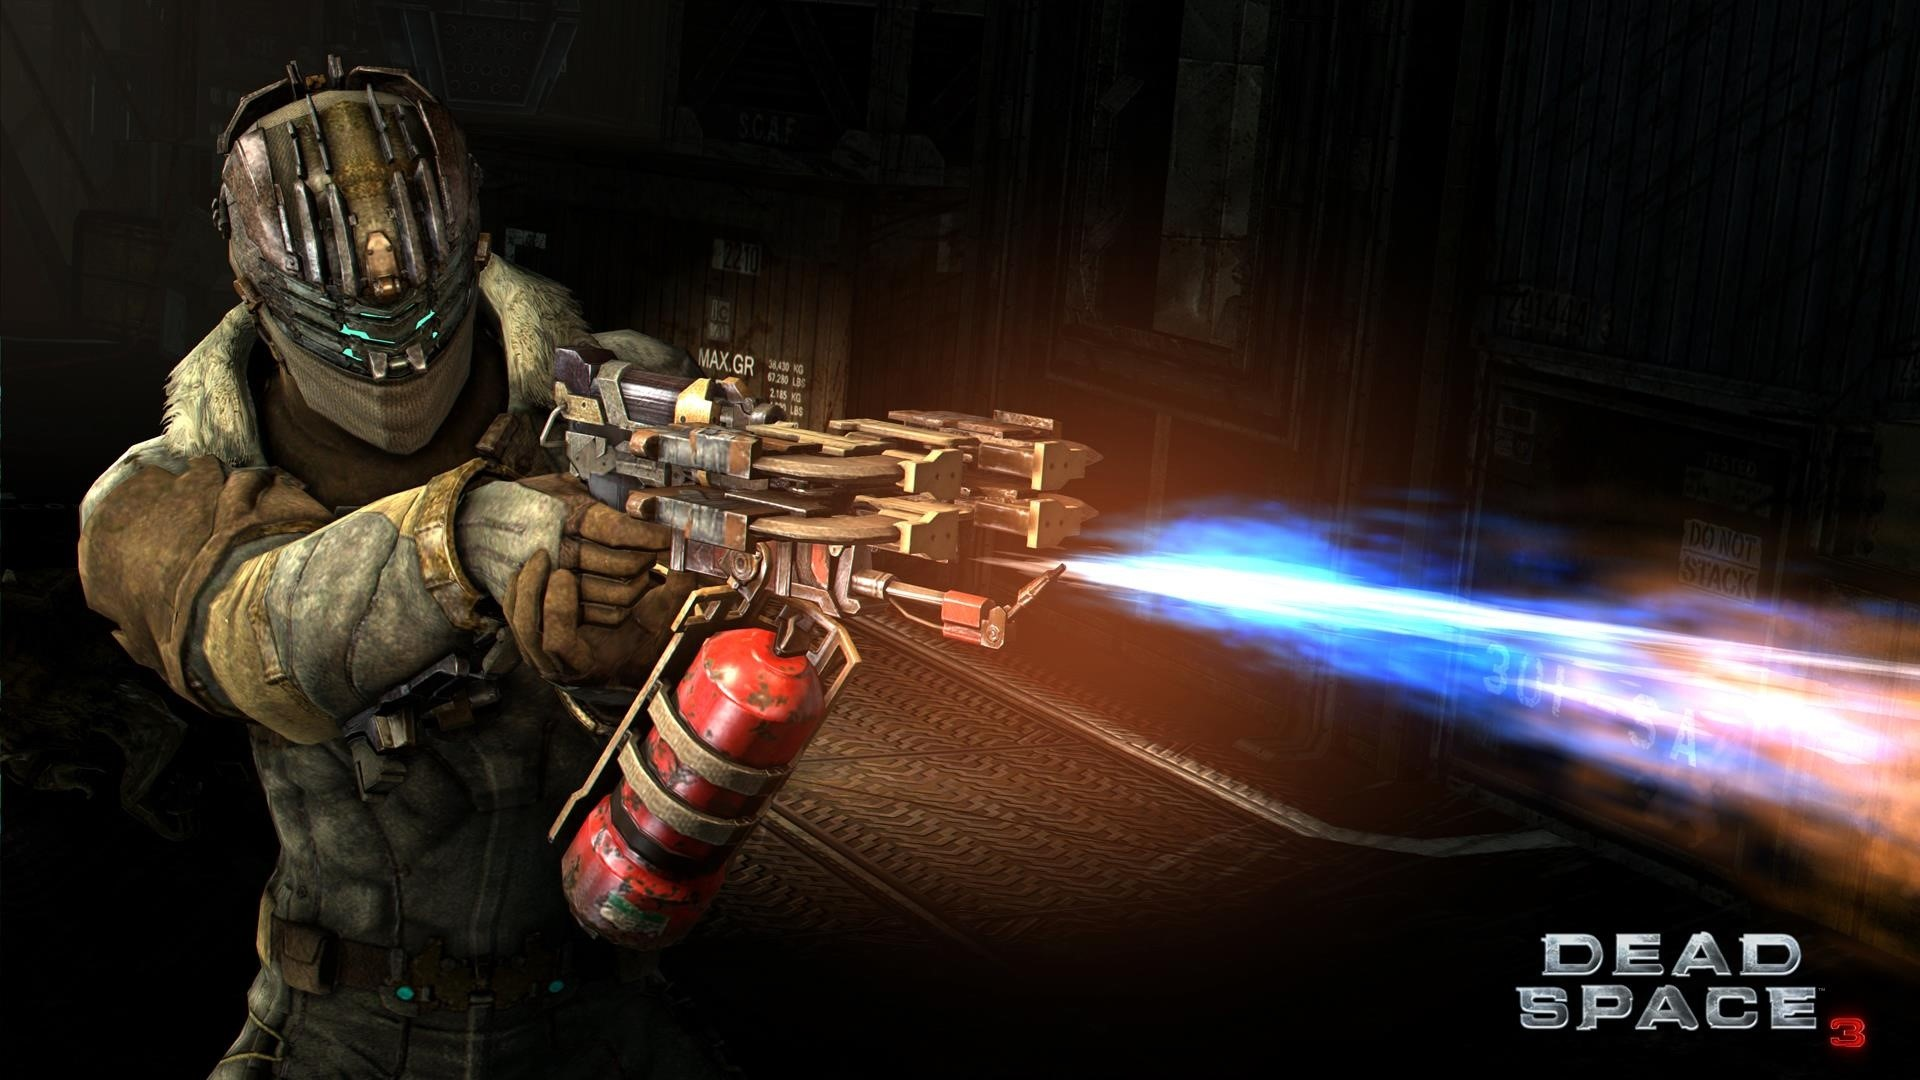 Fondos de pantalla Dead space 3 Blowtorch